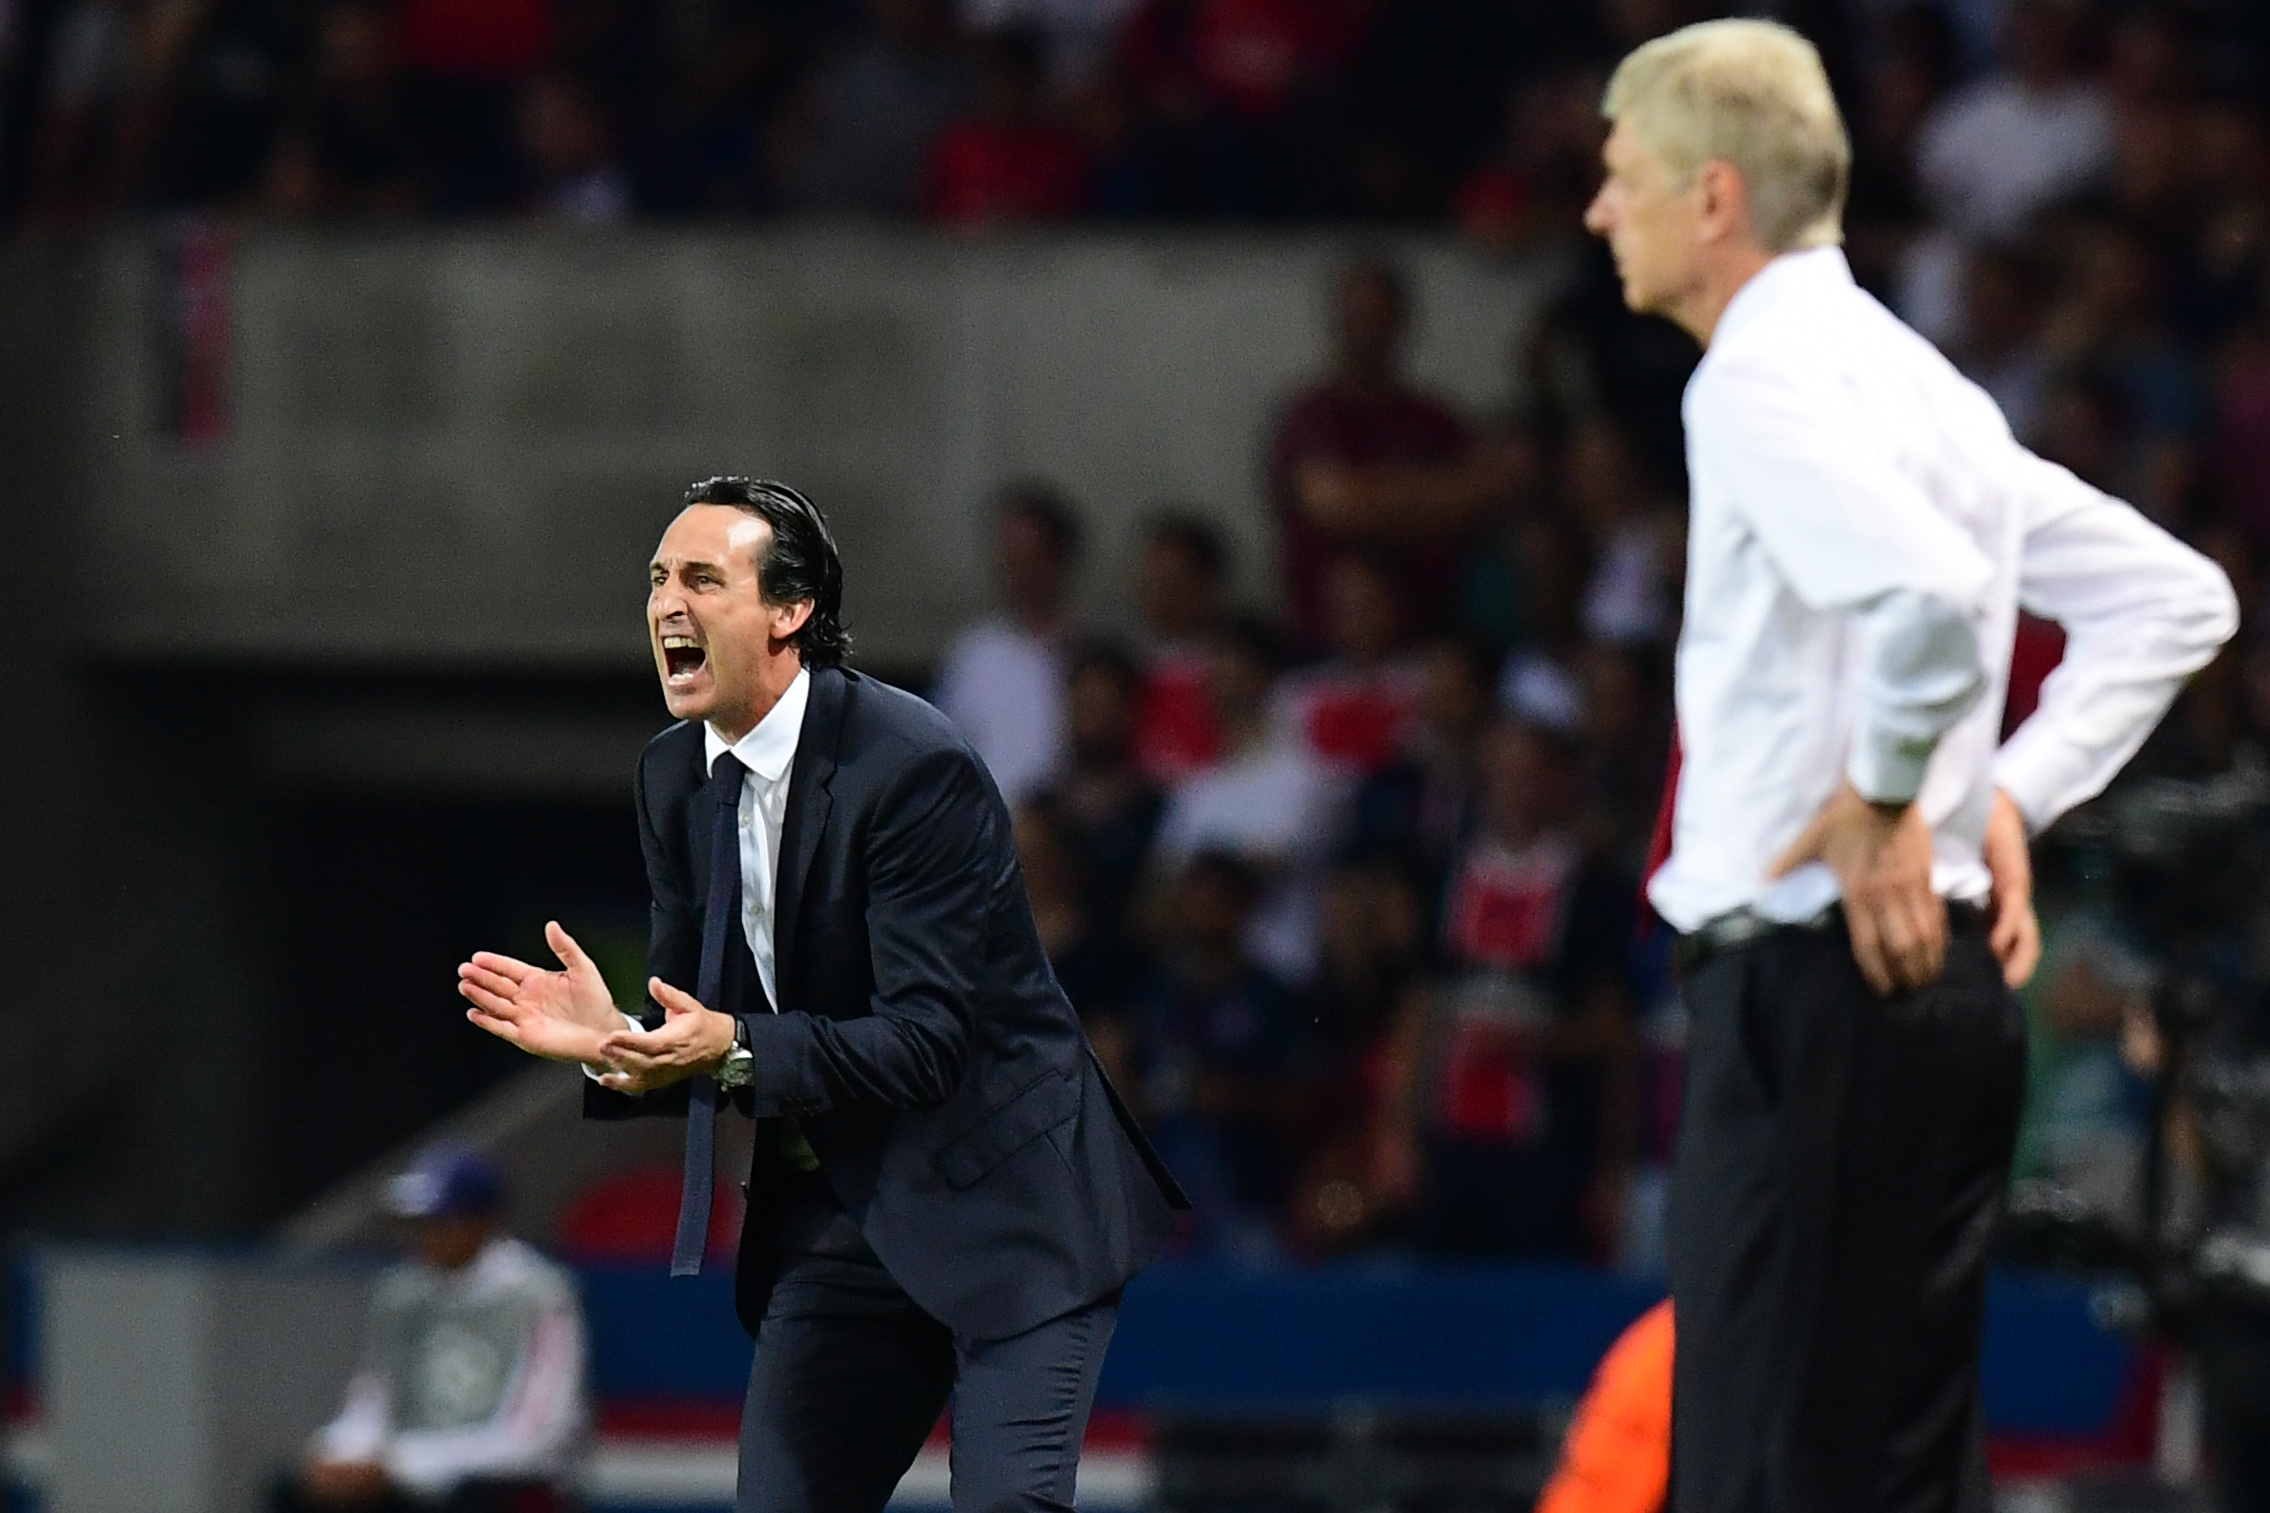 Paris Saint-Germain's Spanish head coach Unai Emery (L) gestures next to Arsenal's French manager Arsene Wenger during the UEFA Champions League Group A football match between Paris-Saint-Germain vs Arsenal FC, on September 13, 2016 at the Parc des Princes stadium in Paris. AFP PHOTO / FRANCK FIFE / AFP / FRANCK FIFE (Photo credit should read FRANCK FIFE/AFP/Getty Images)